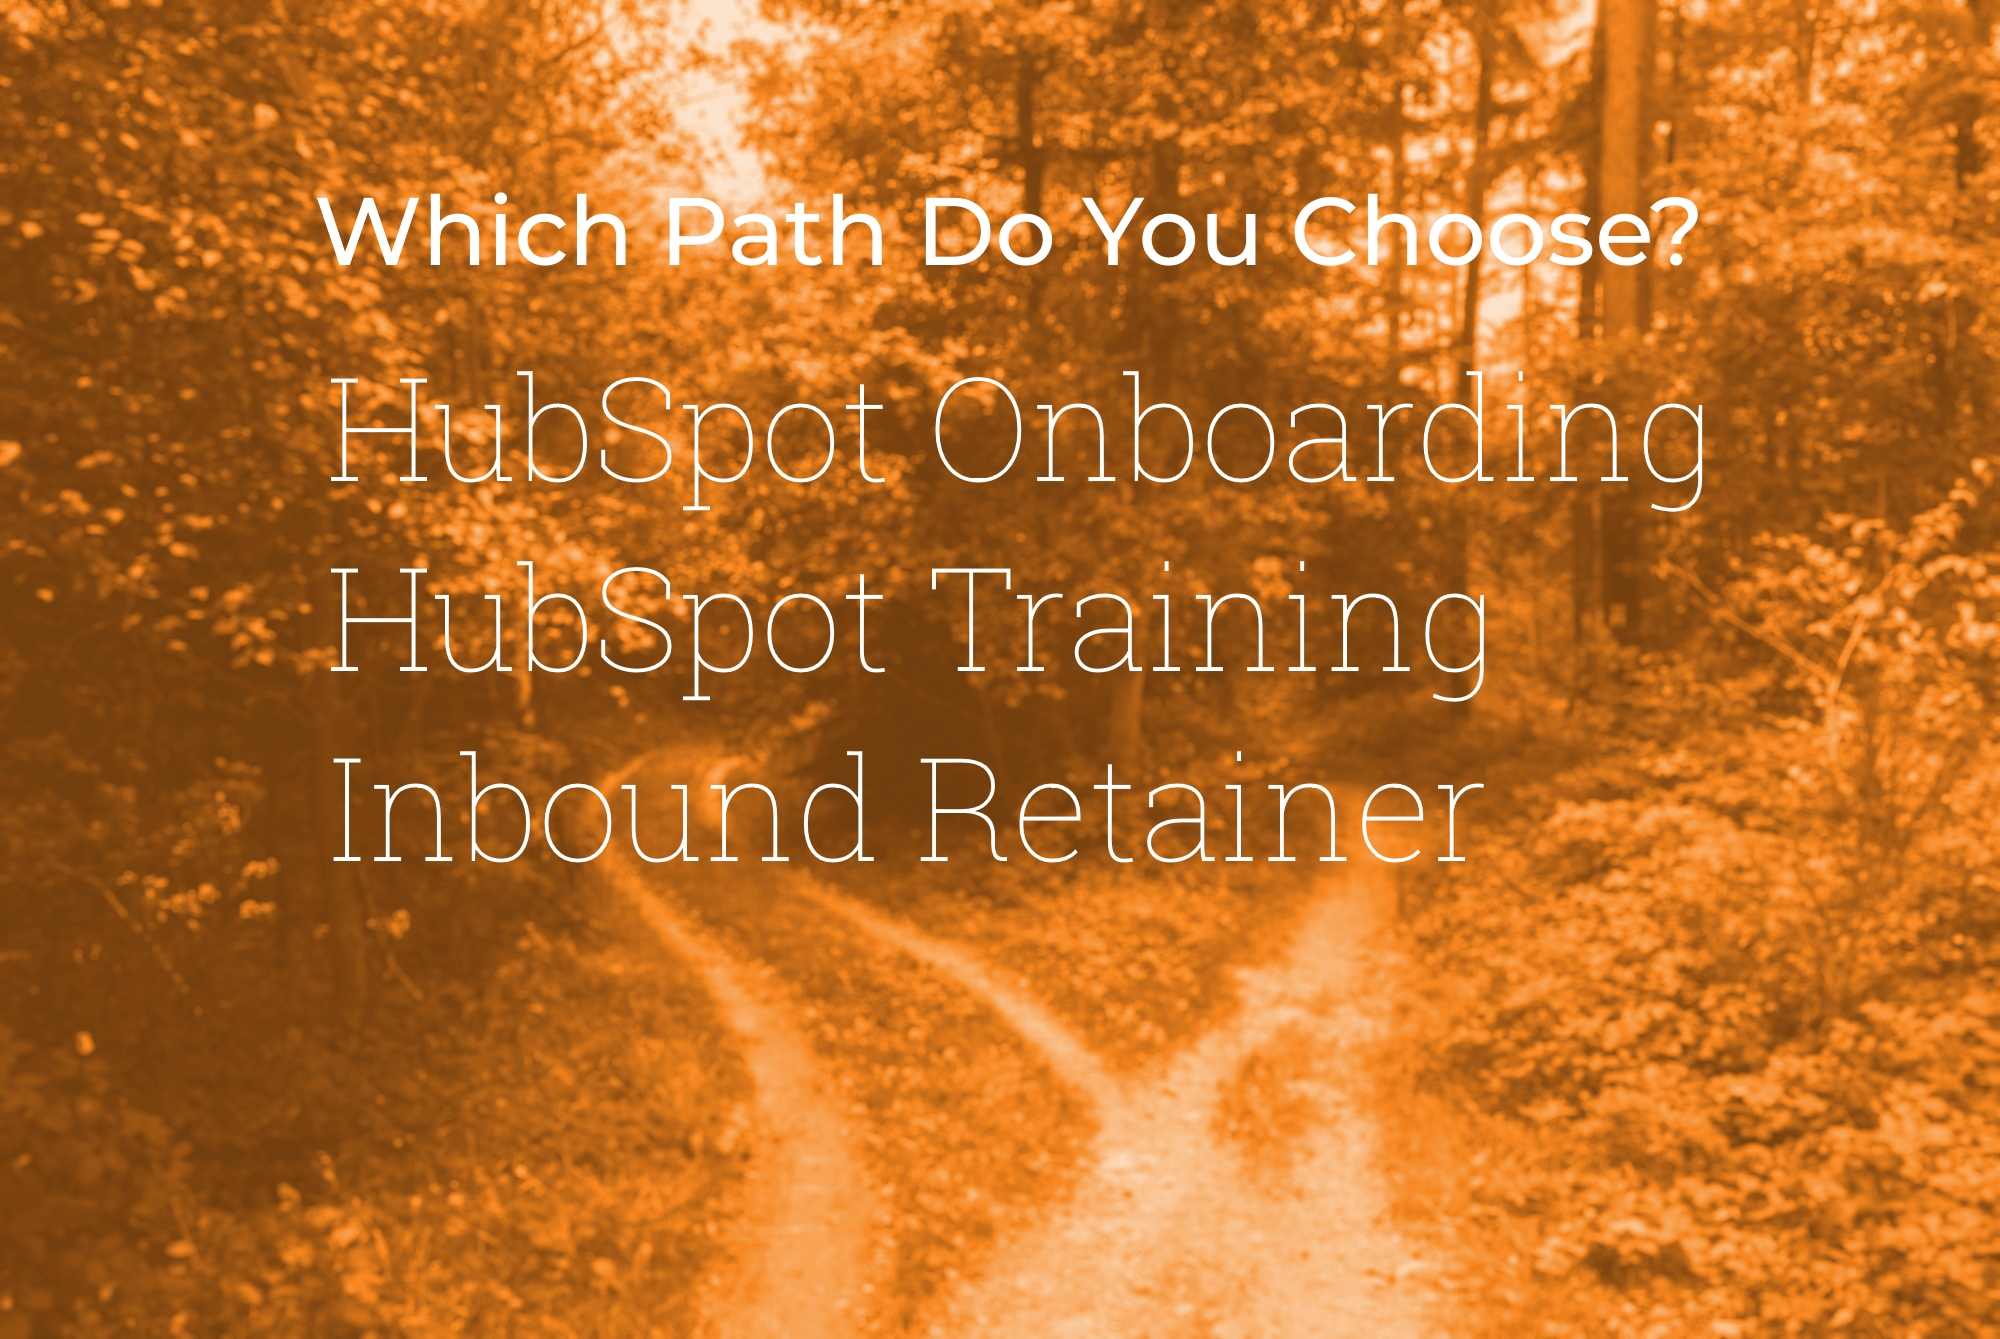 HubSpot Onboarding vs HubSpot Training vs Inbound Retainer